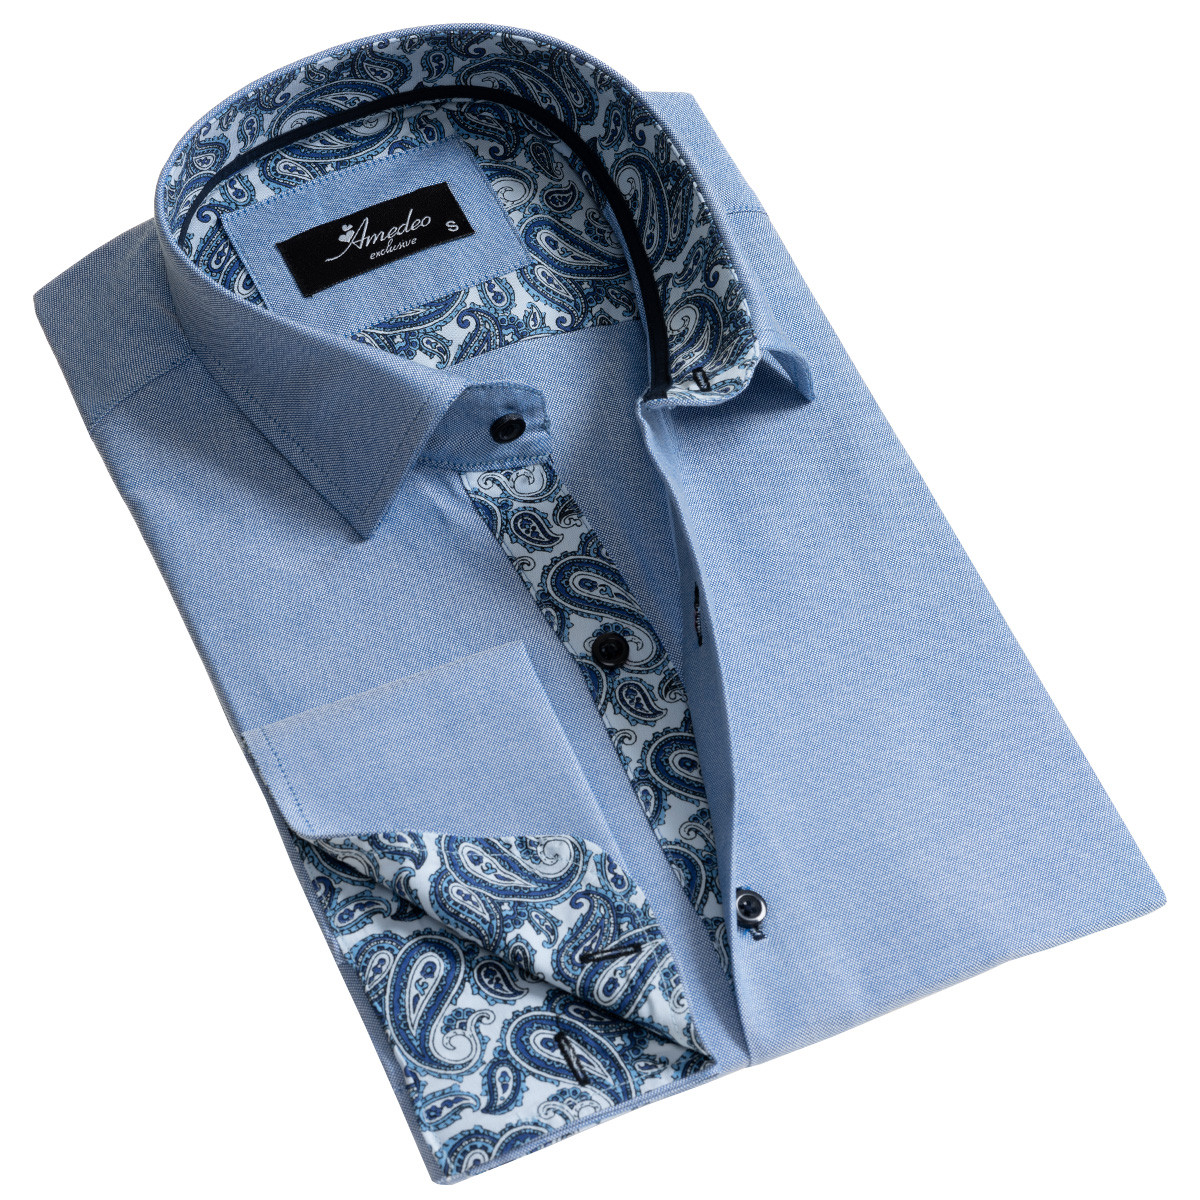 European Made & Designed Reversible Cuff Premium French Cuff Dress Shirt - light blue